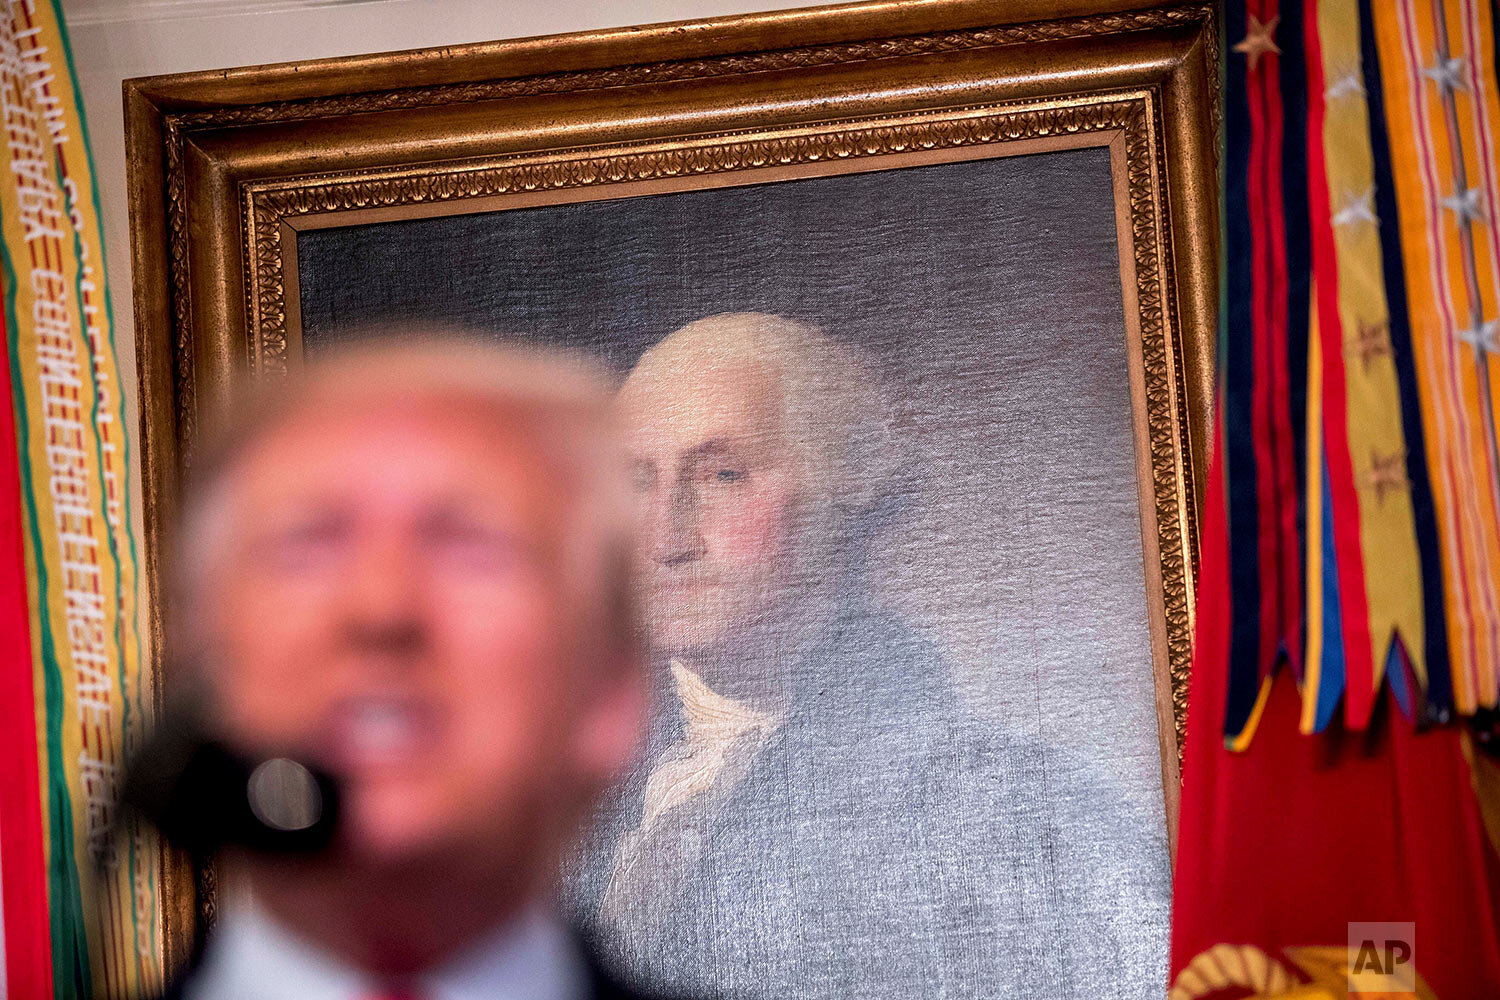 President Donald Trump speaks in front of a painting of former President George Washington in the Diplomatic Room of the White House in Washington, Sunday, Oct. 27, 2019, to announce that Islamic State leader Abu Bakr al-Baghdadi has been killed during a U.S. raid in Syria. (AP Photo/Andrew Harnik)